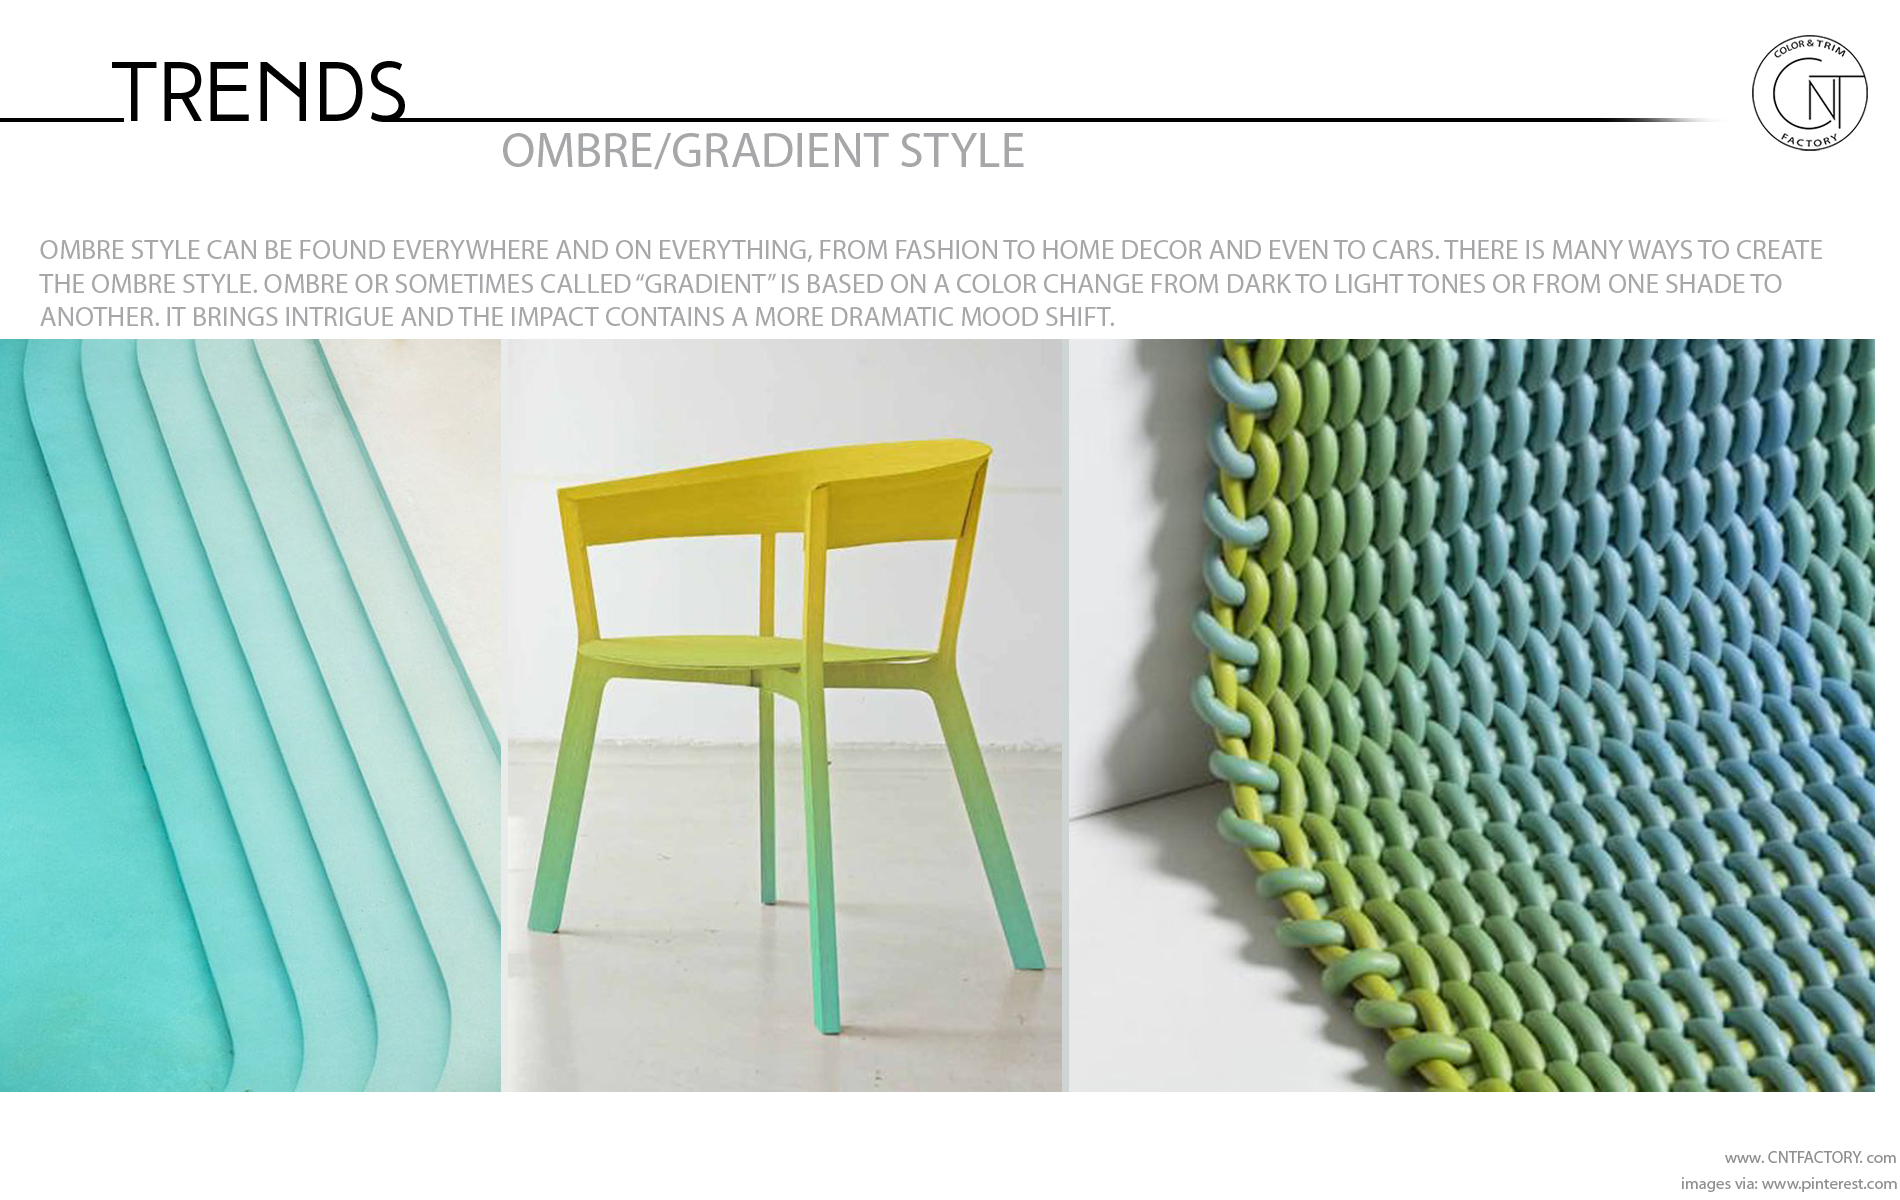 Ombre gradient style trends